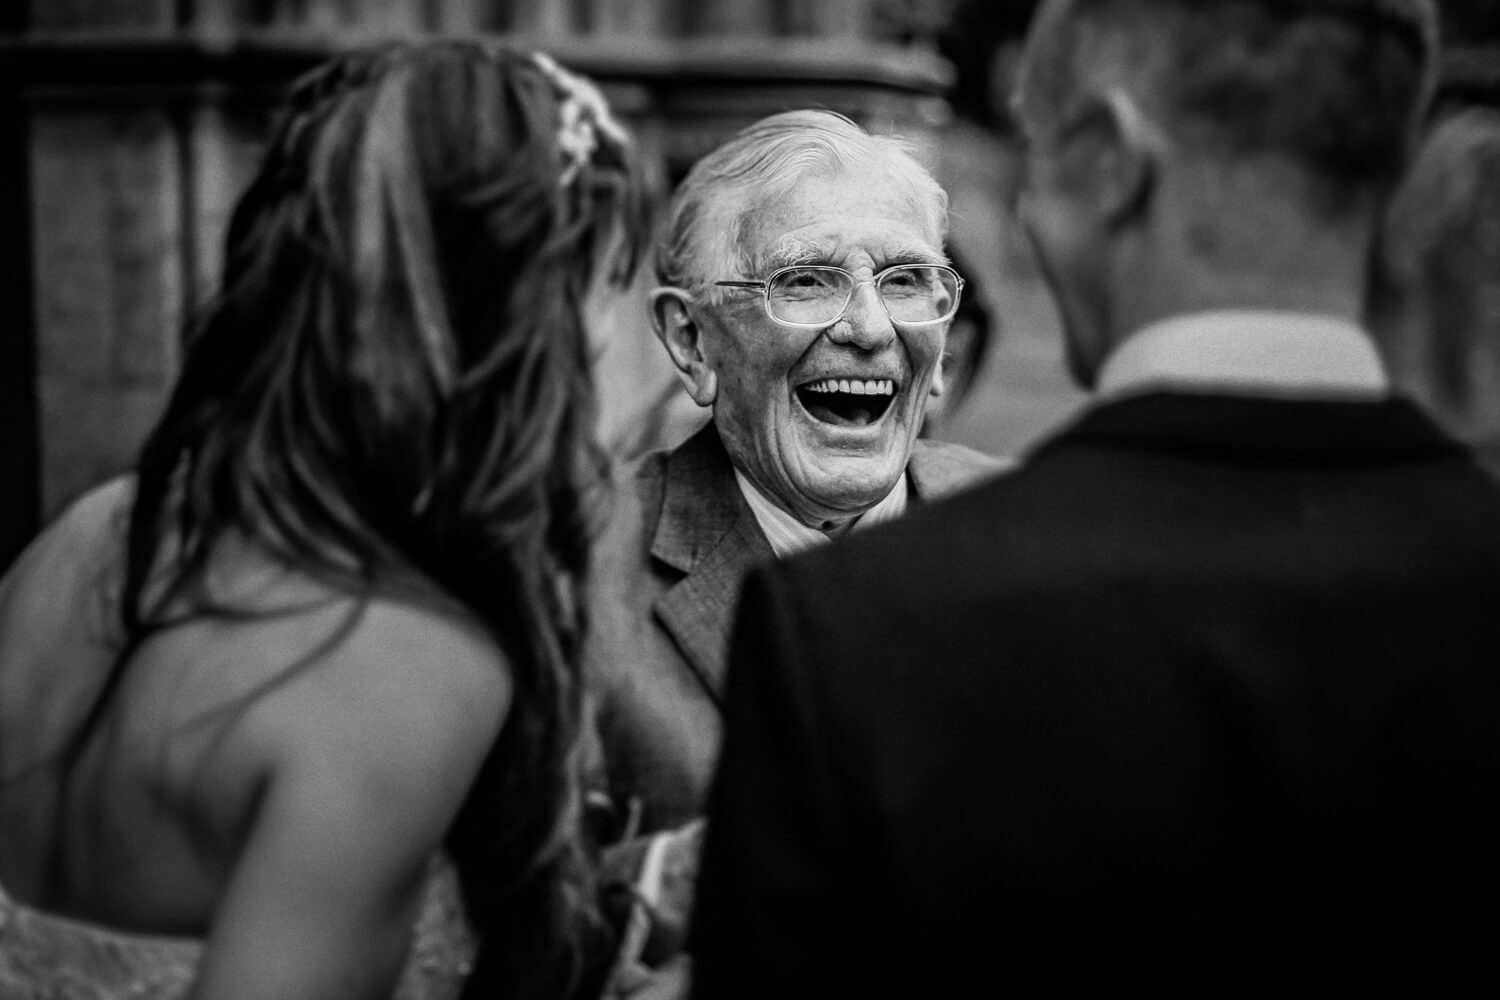 Old man laughing. Liverpool Documentary wedding photography